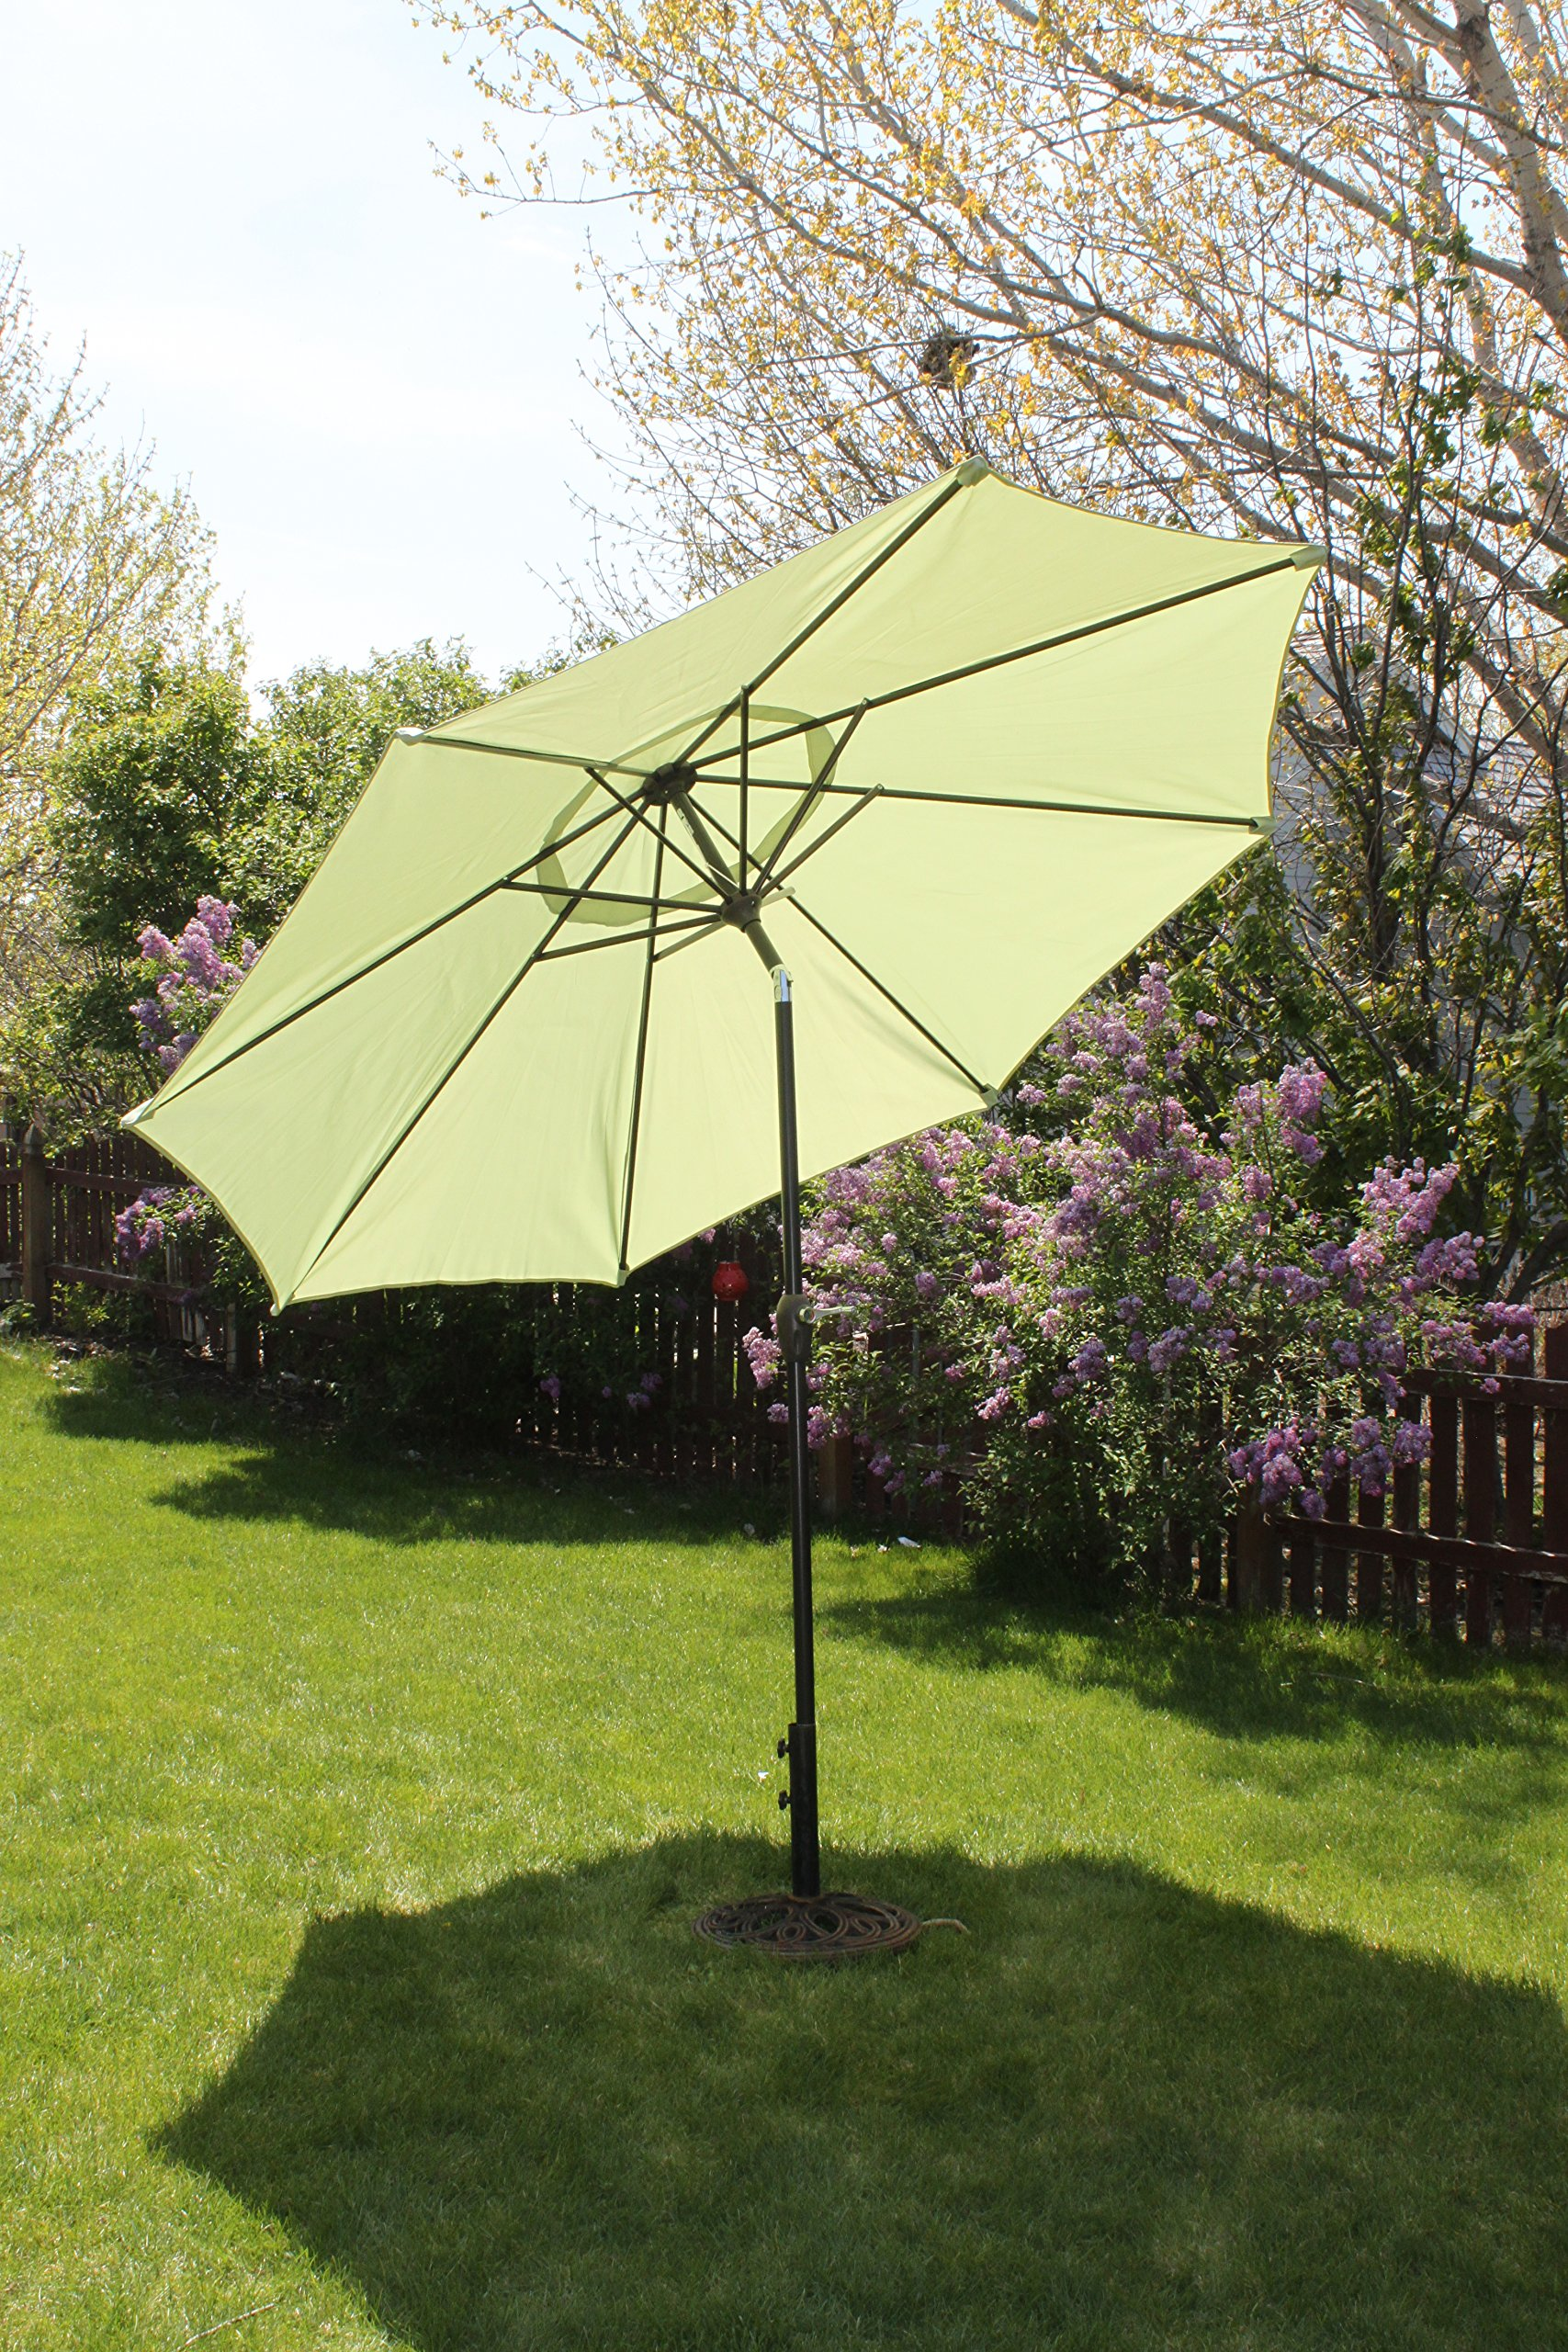 9' Market Patio Umbrella with Tilt and Crank - Light Lime Green - 9' Patio Market Umbrella This Patio Umbrella has a Vented Top for Wind This Patio Umbrella has a push Tilt mechanism - shades-parasols, patio-furniture, patio - A1k9PpkNh L -